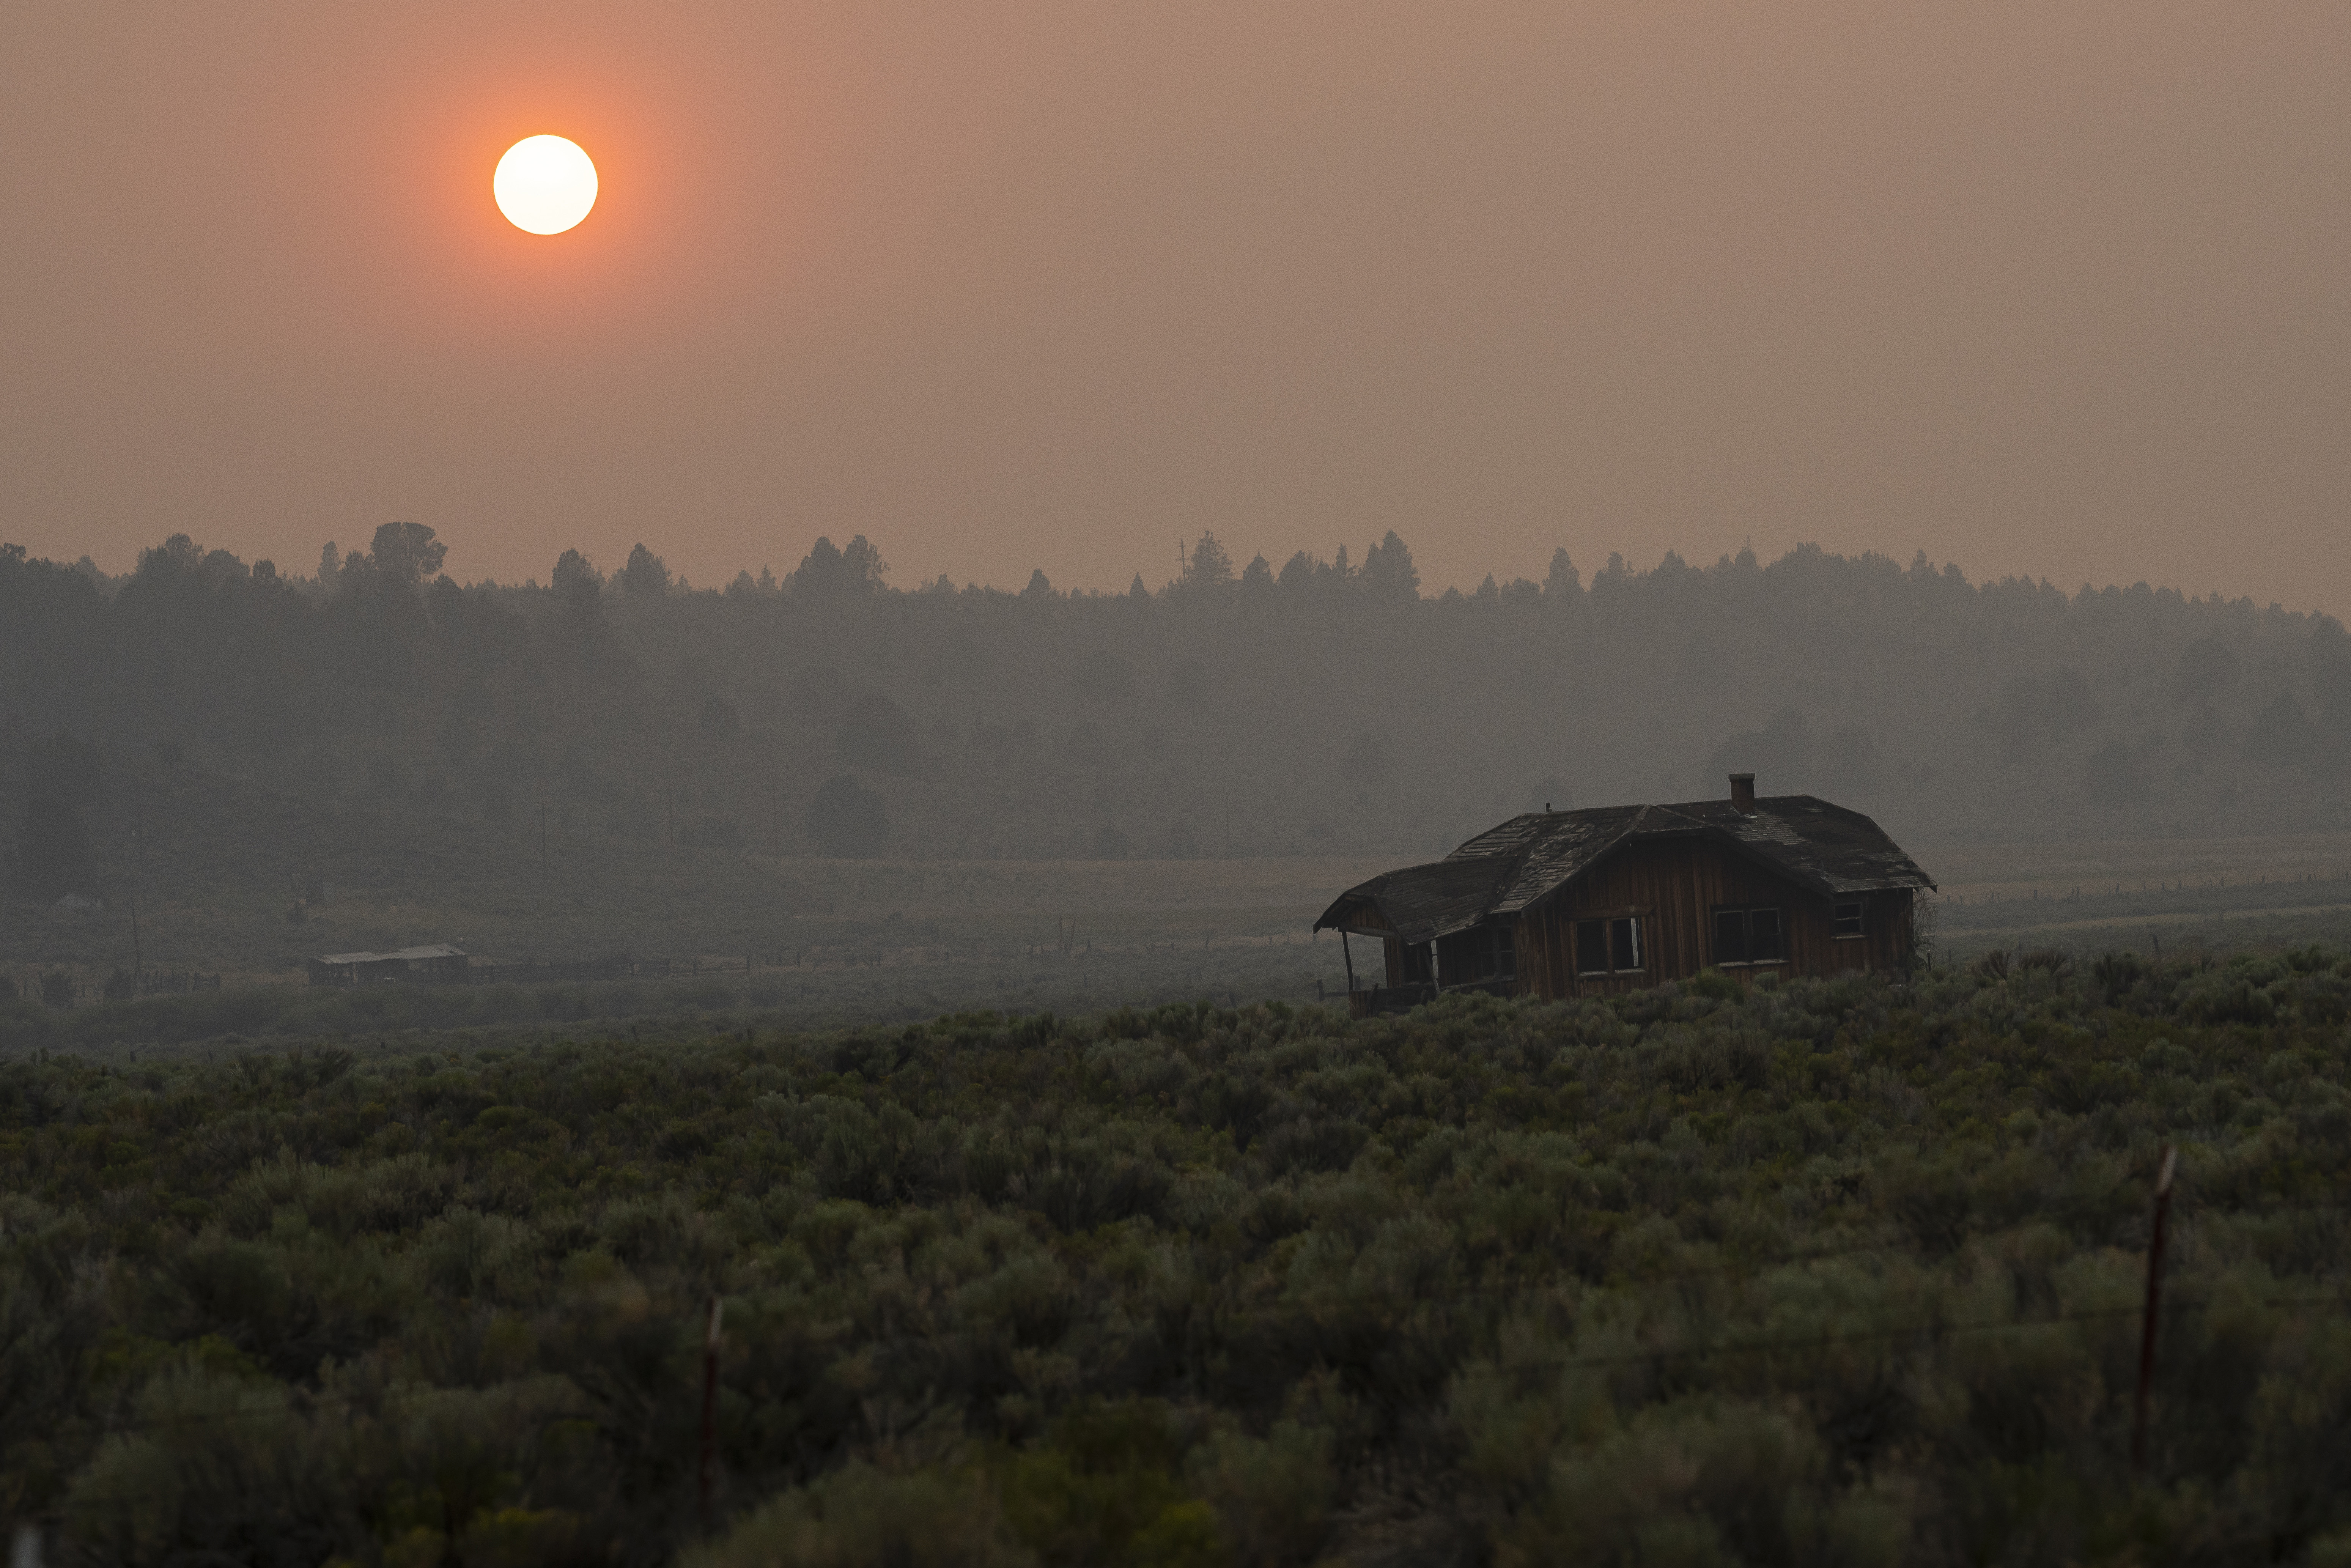 More wildfire smoke expected to move into region